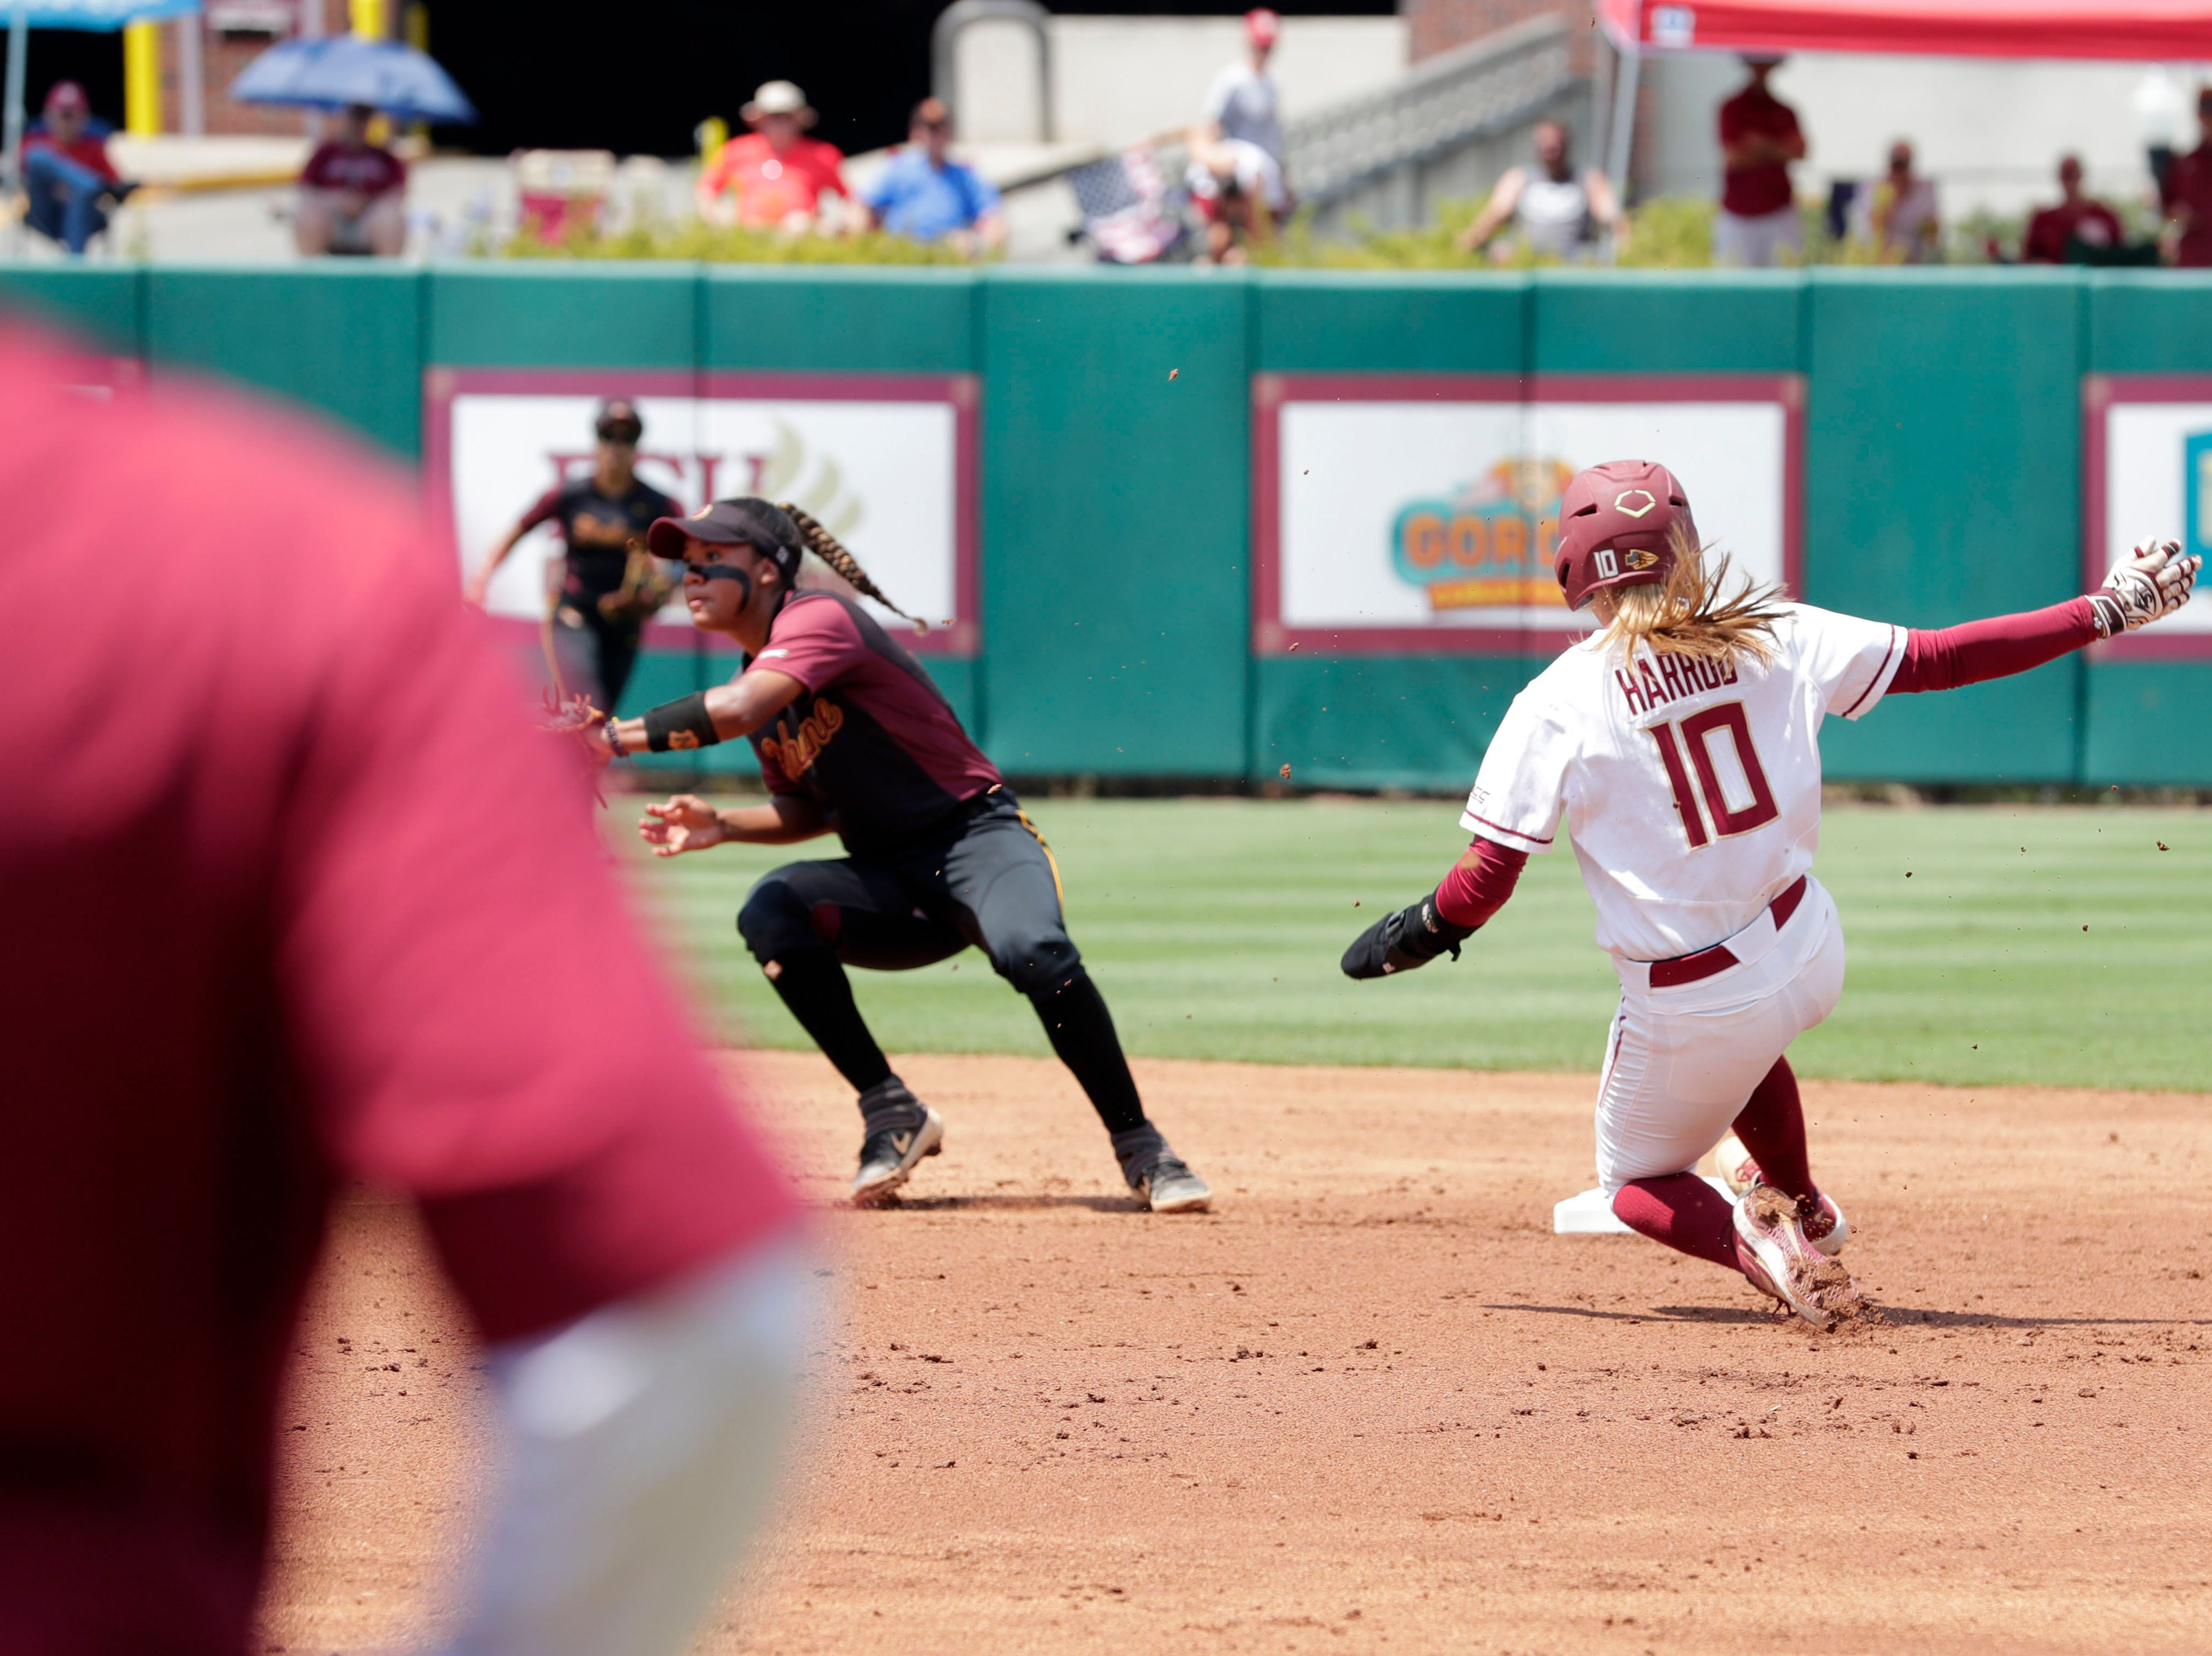 Florida State Seminoles infielder Cali Harrod (10) steals second base. The Florida State Seminoles host the Bethune-Cookman Wildcats in the first round of the NCAA Regional Playoffs Friday, May 17, 2019.